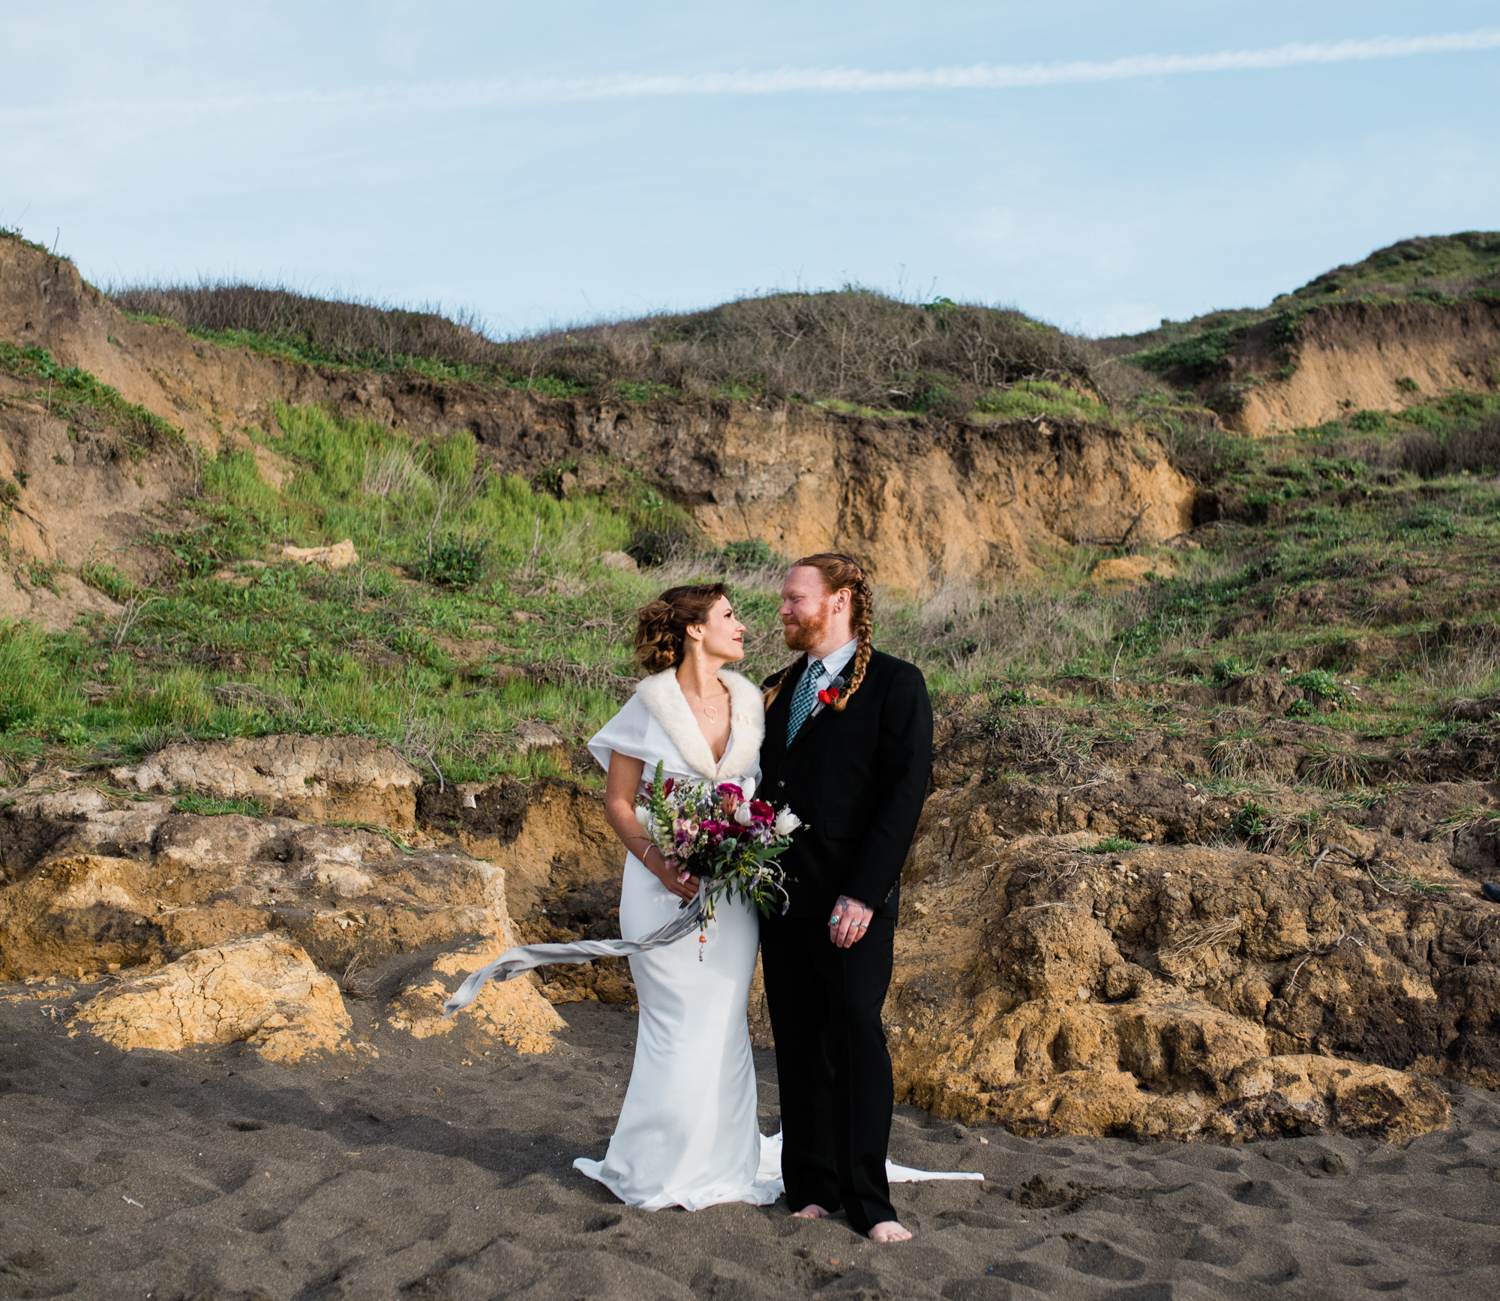 Pacifica_Beach_Surfer_Wedding_124.jpg